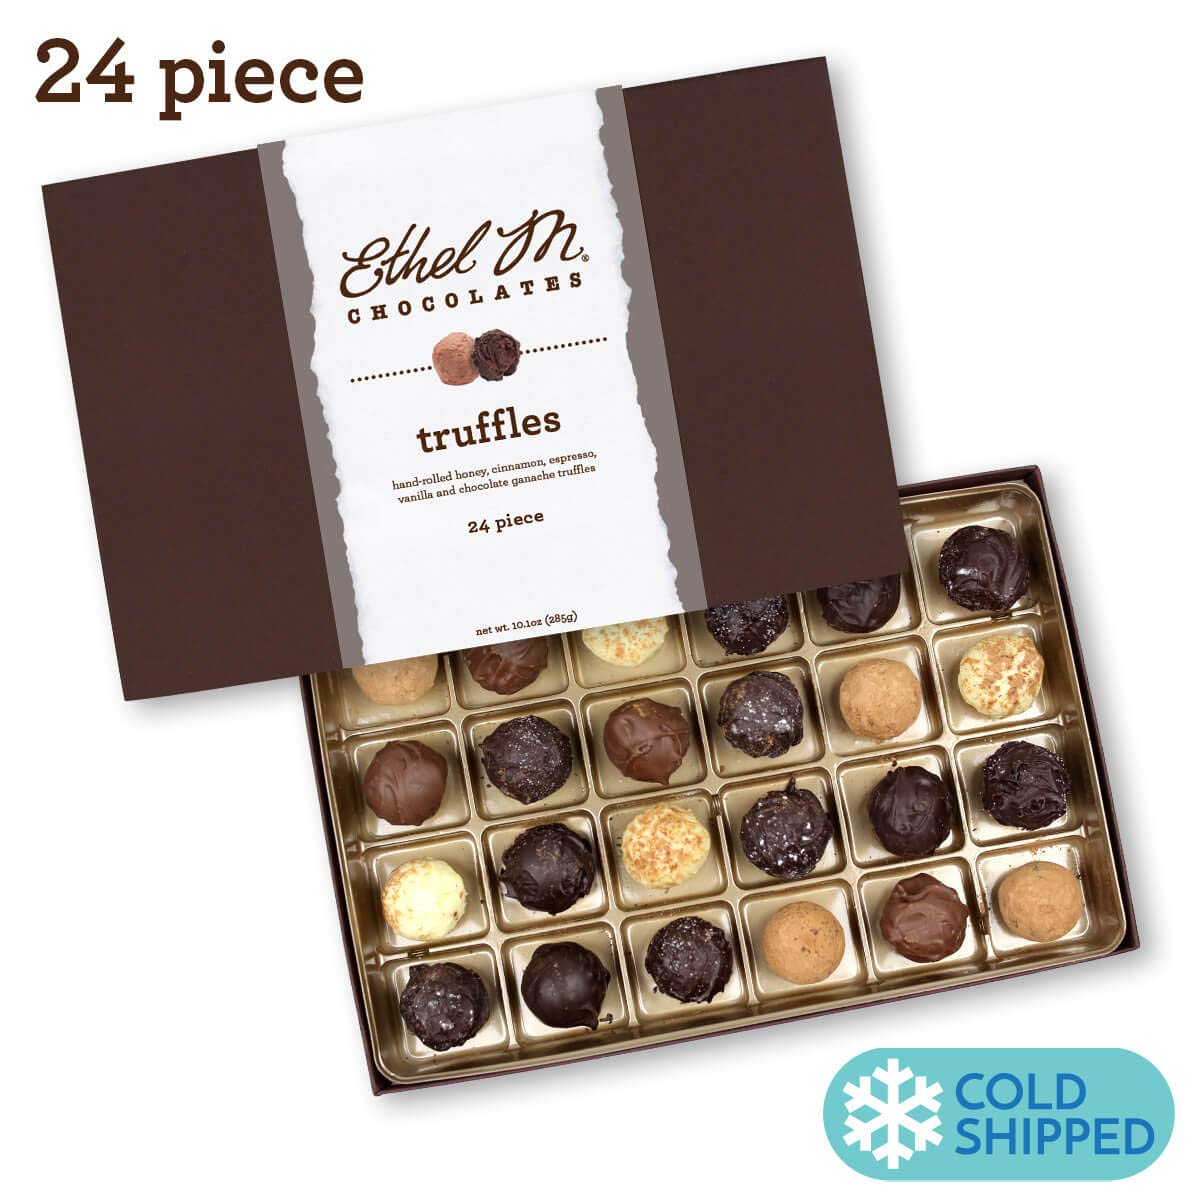 Ethel M Chocolates Truffle Collection 24 piece by Ethel M. Chocolates